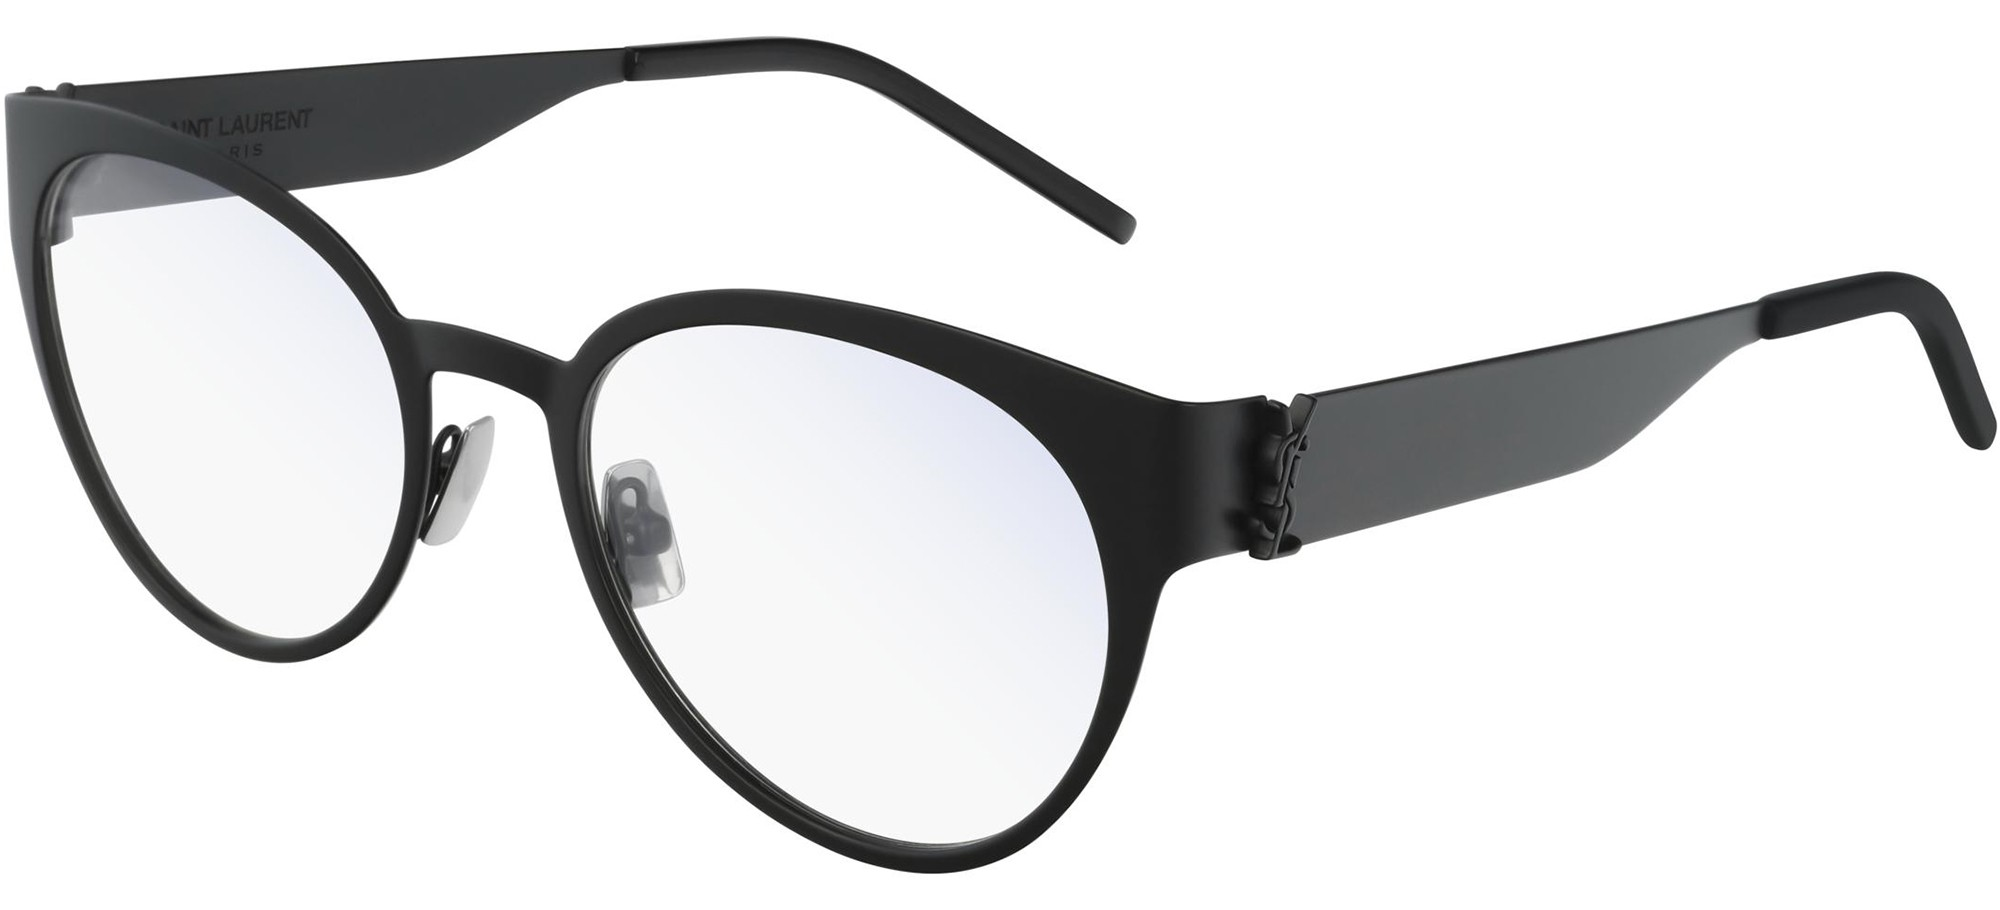 Saint Laurent eyeglasses SL M45